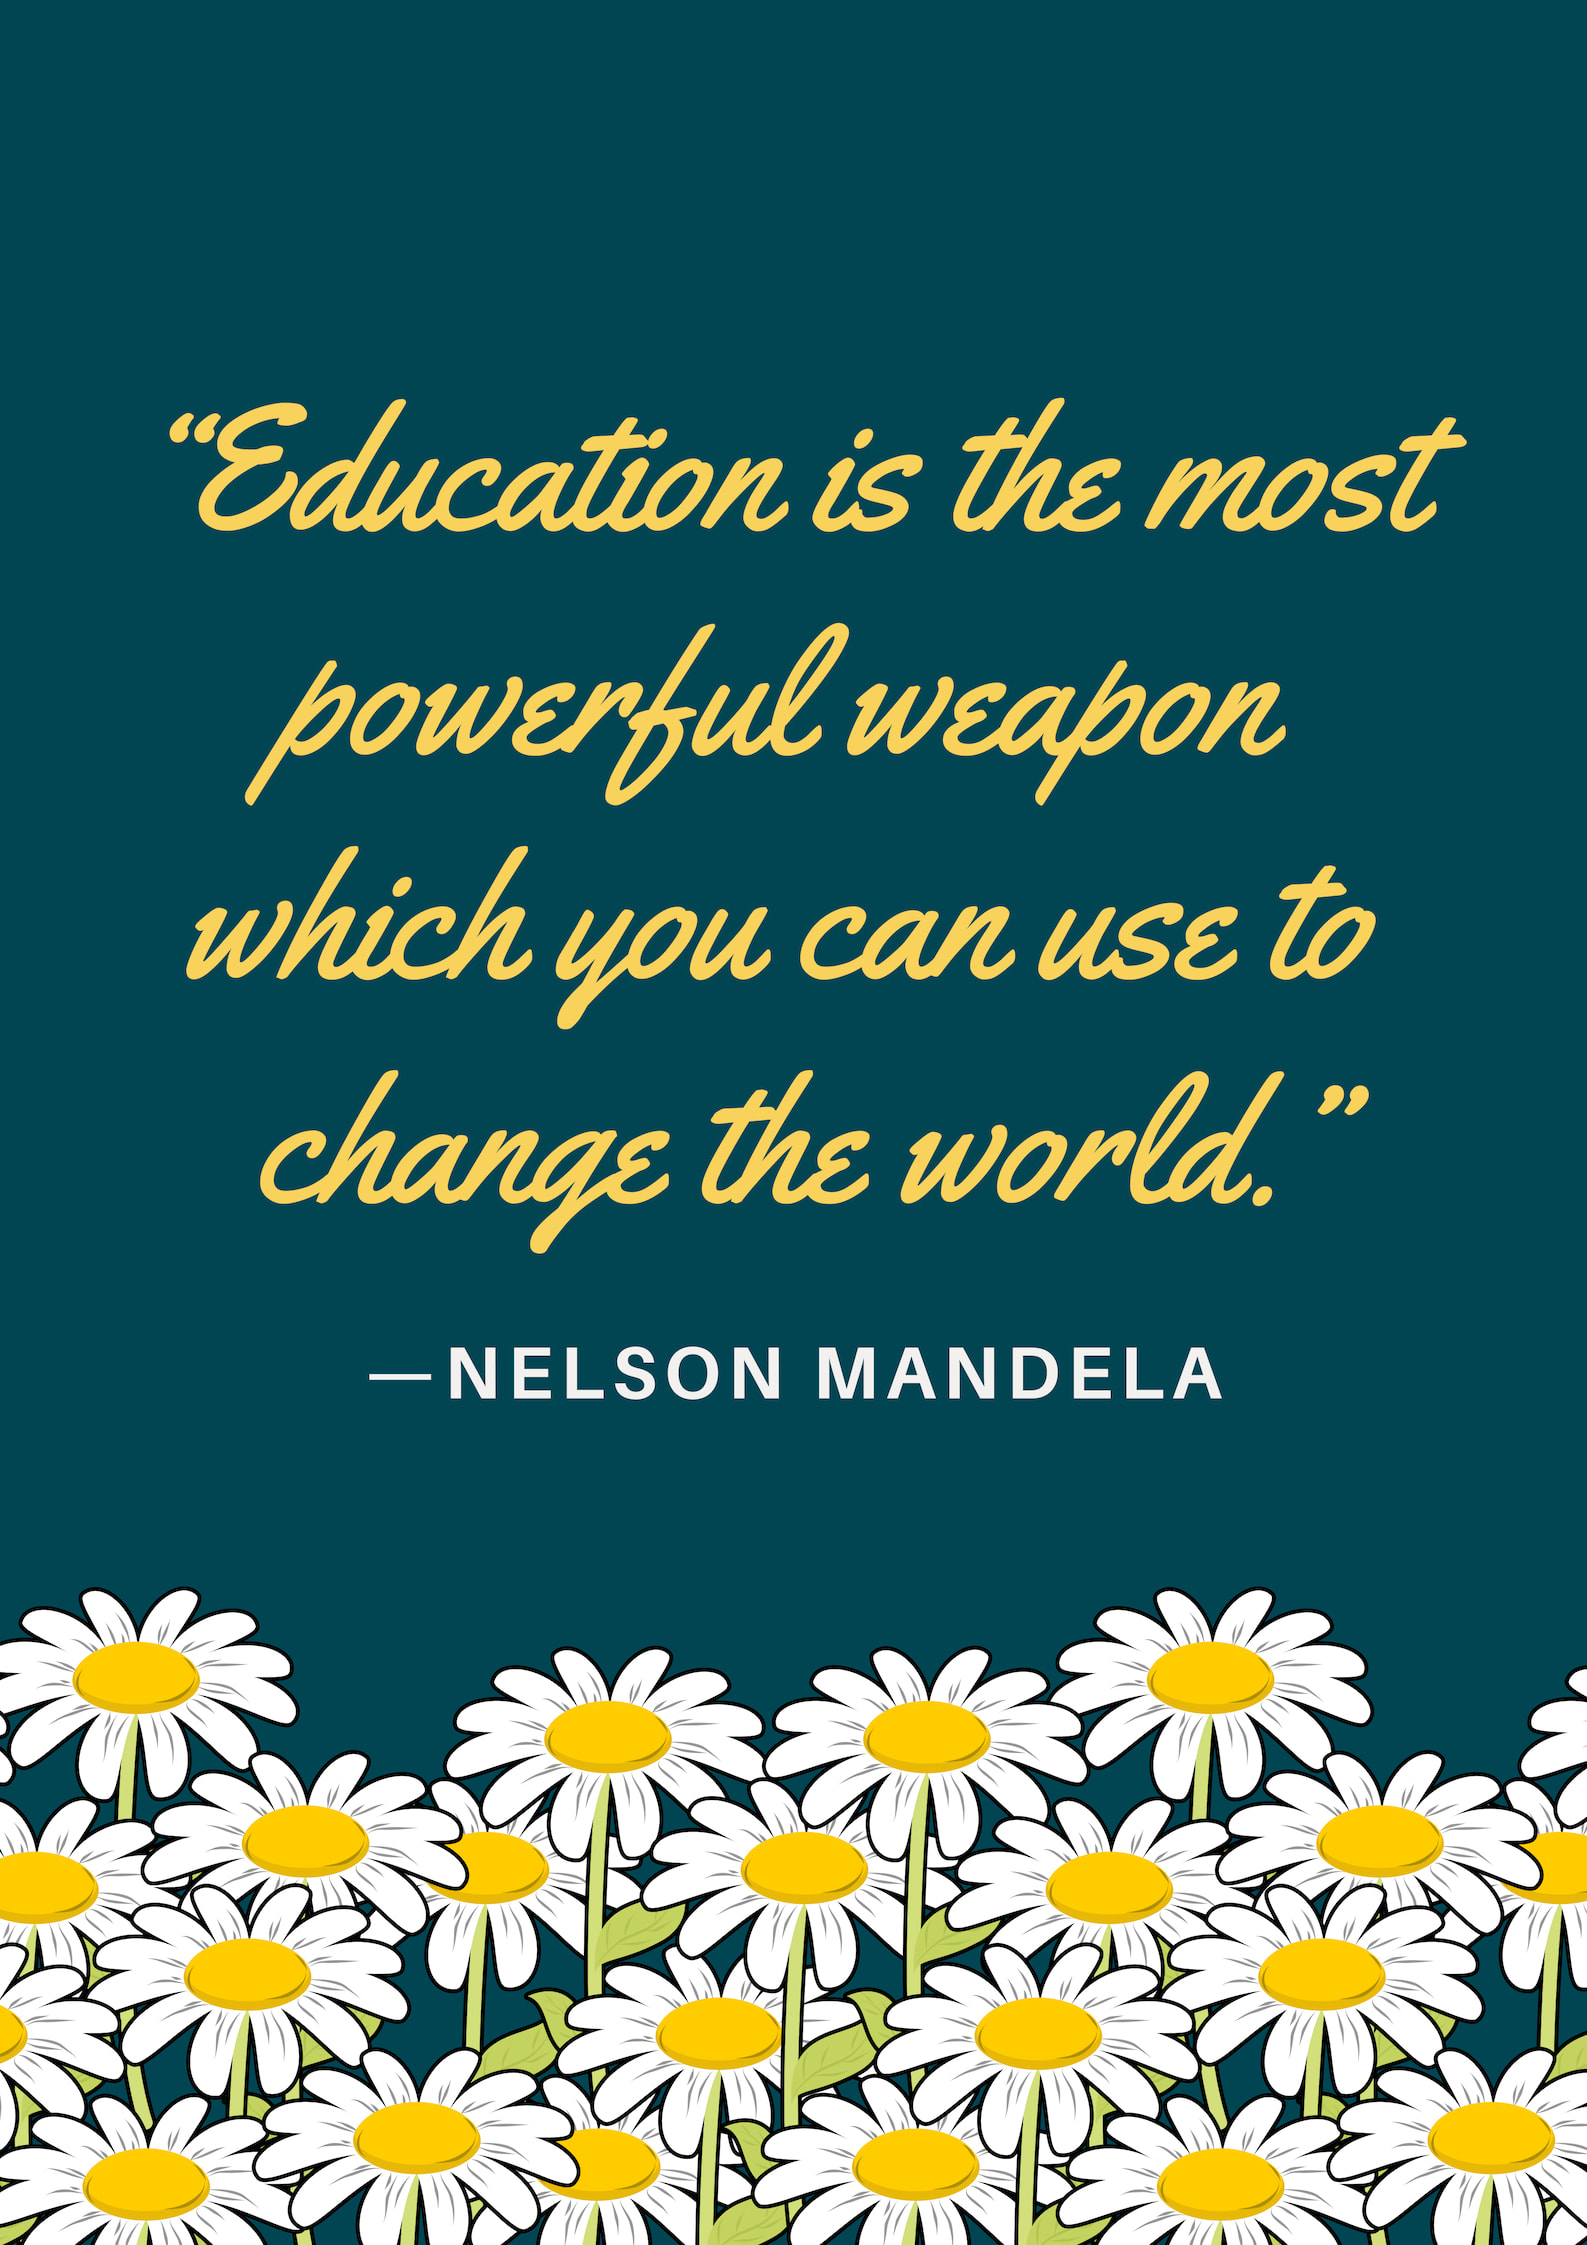 Education Best Key Quotes And Images / 15 15 Quotes About ...